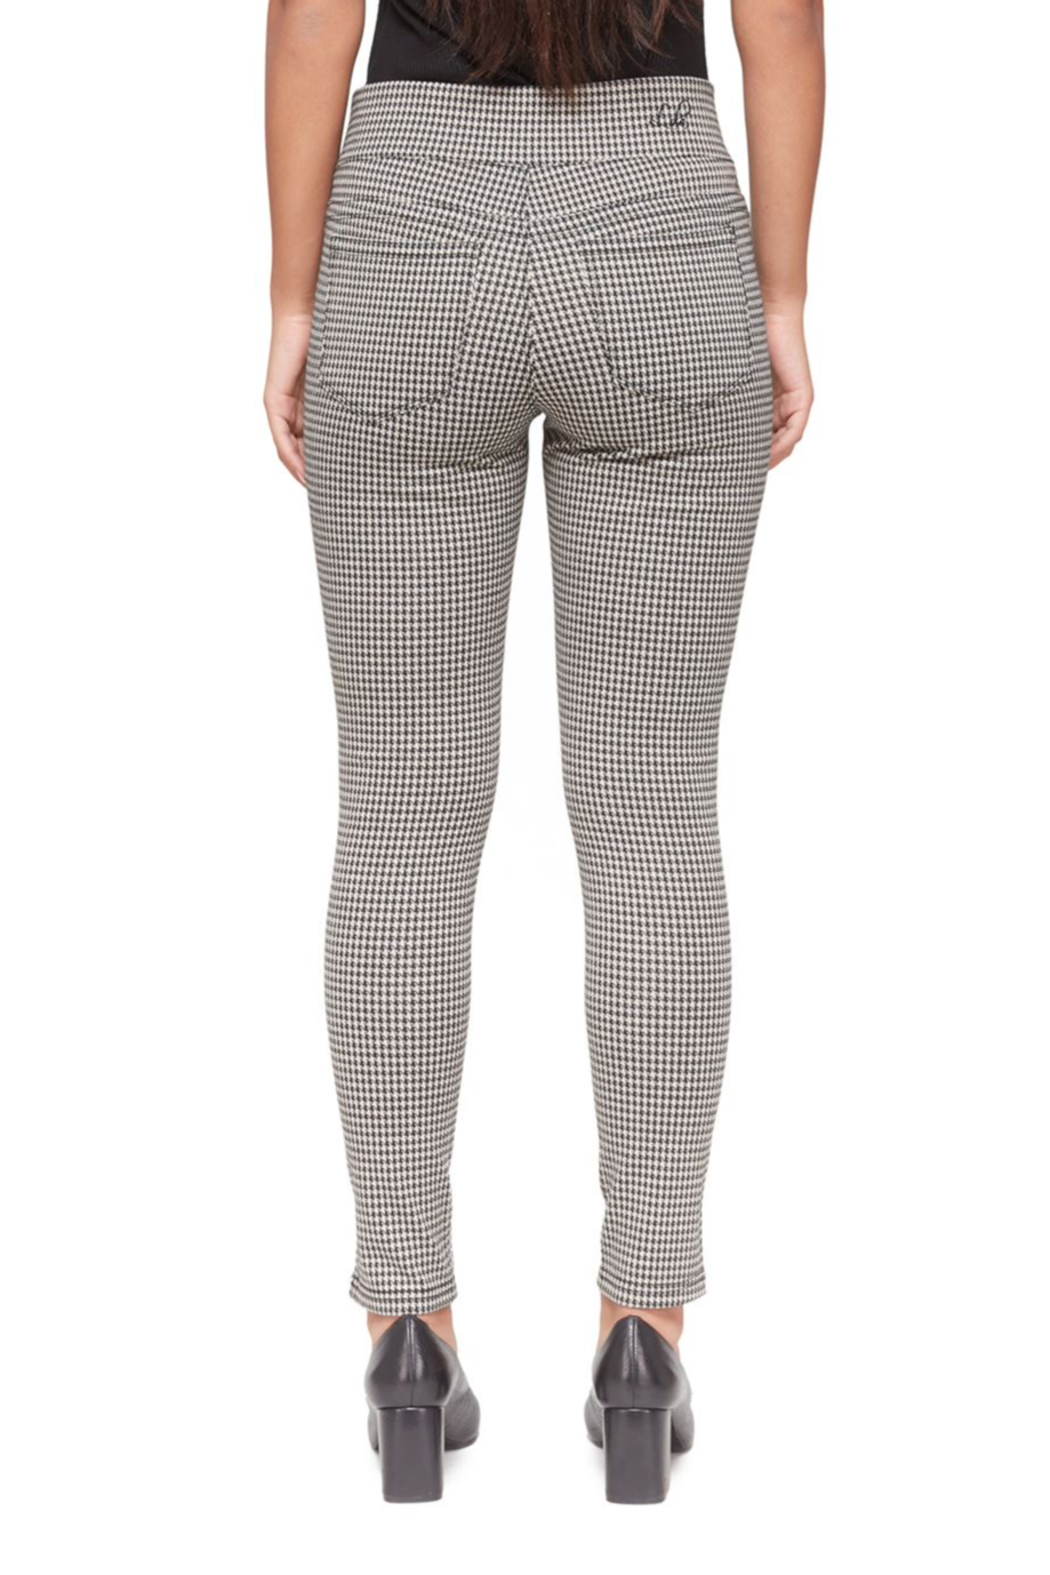 Lola Jeans Anna Houndstooth Jacquard Mid Rise Pant - Side Cropped Image